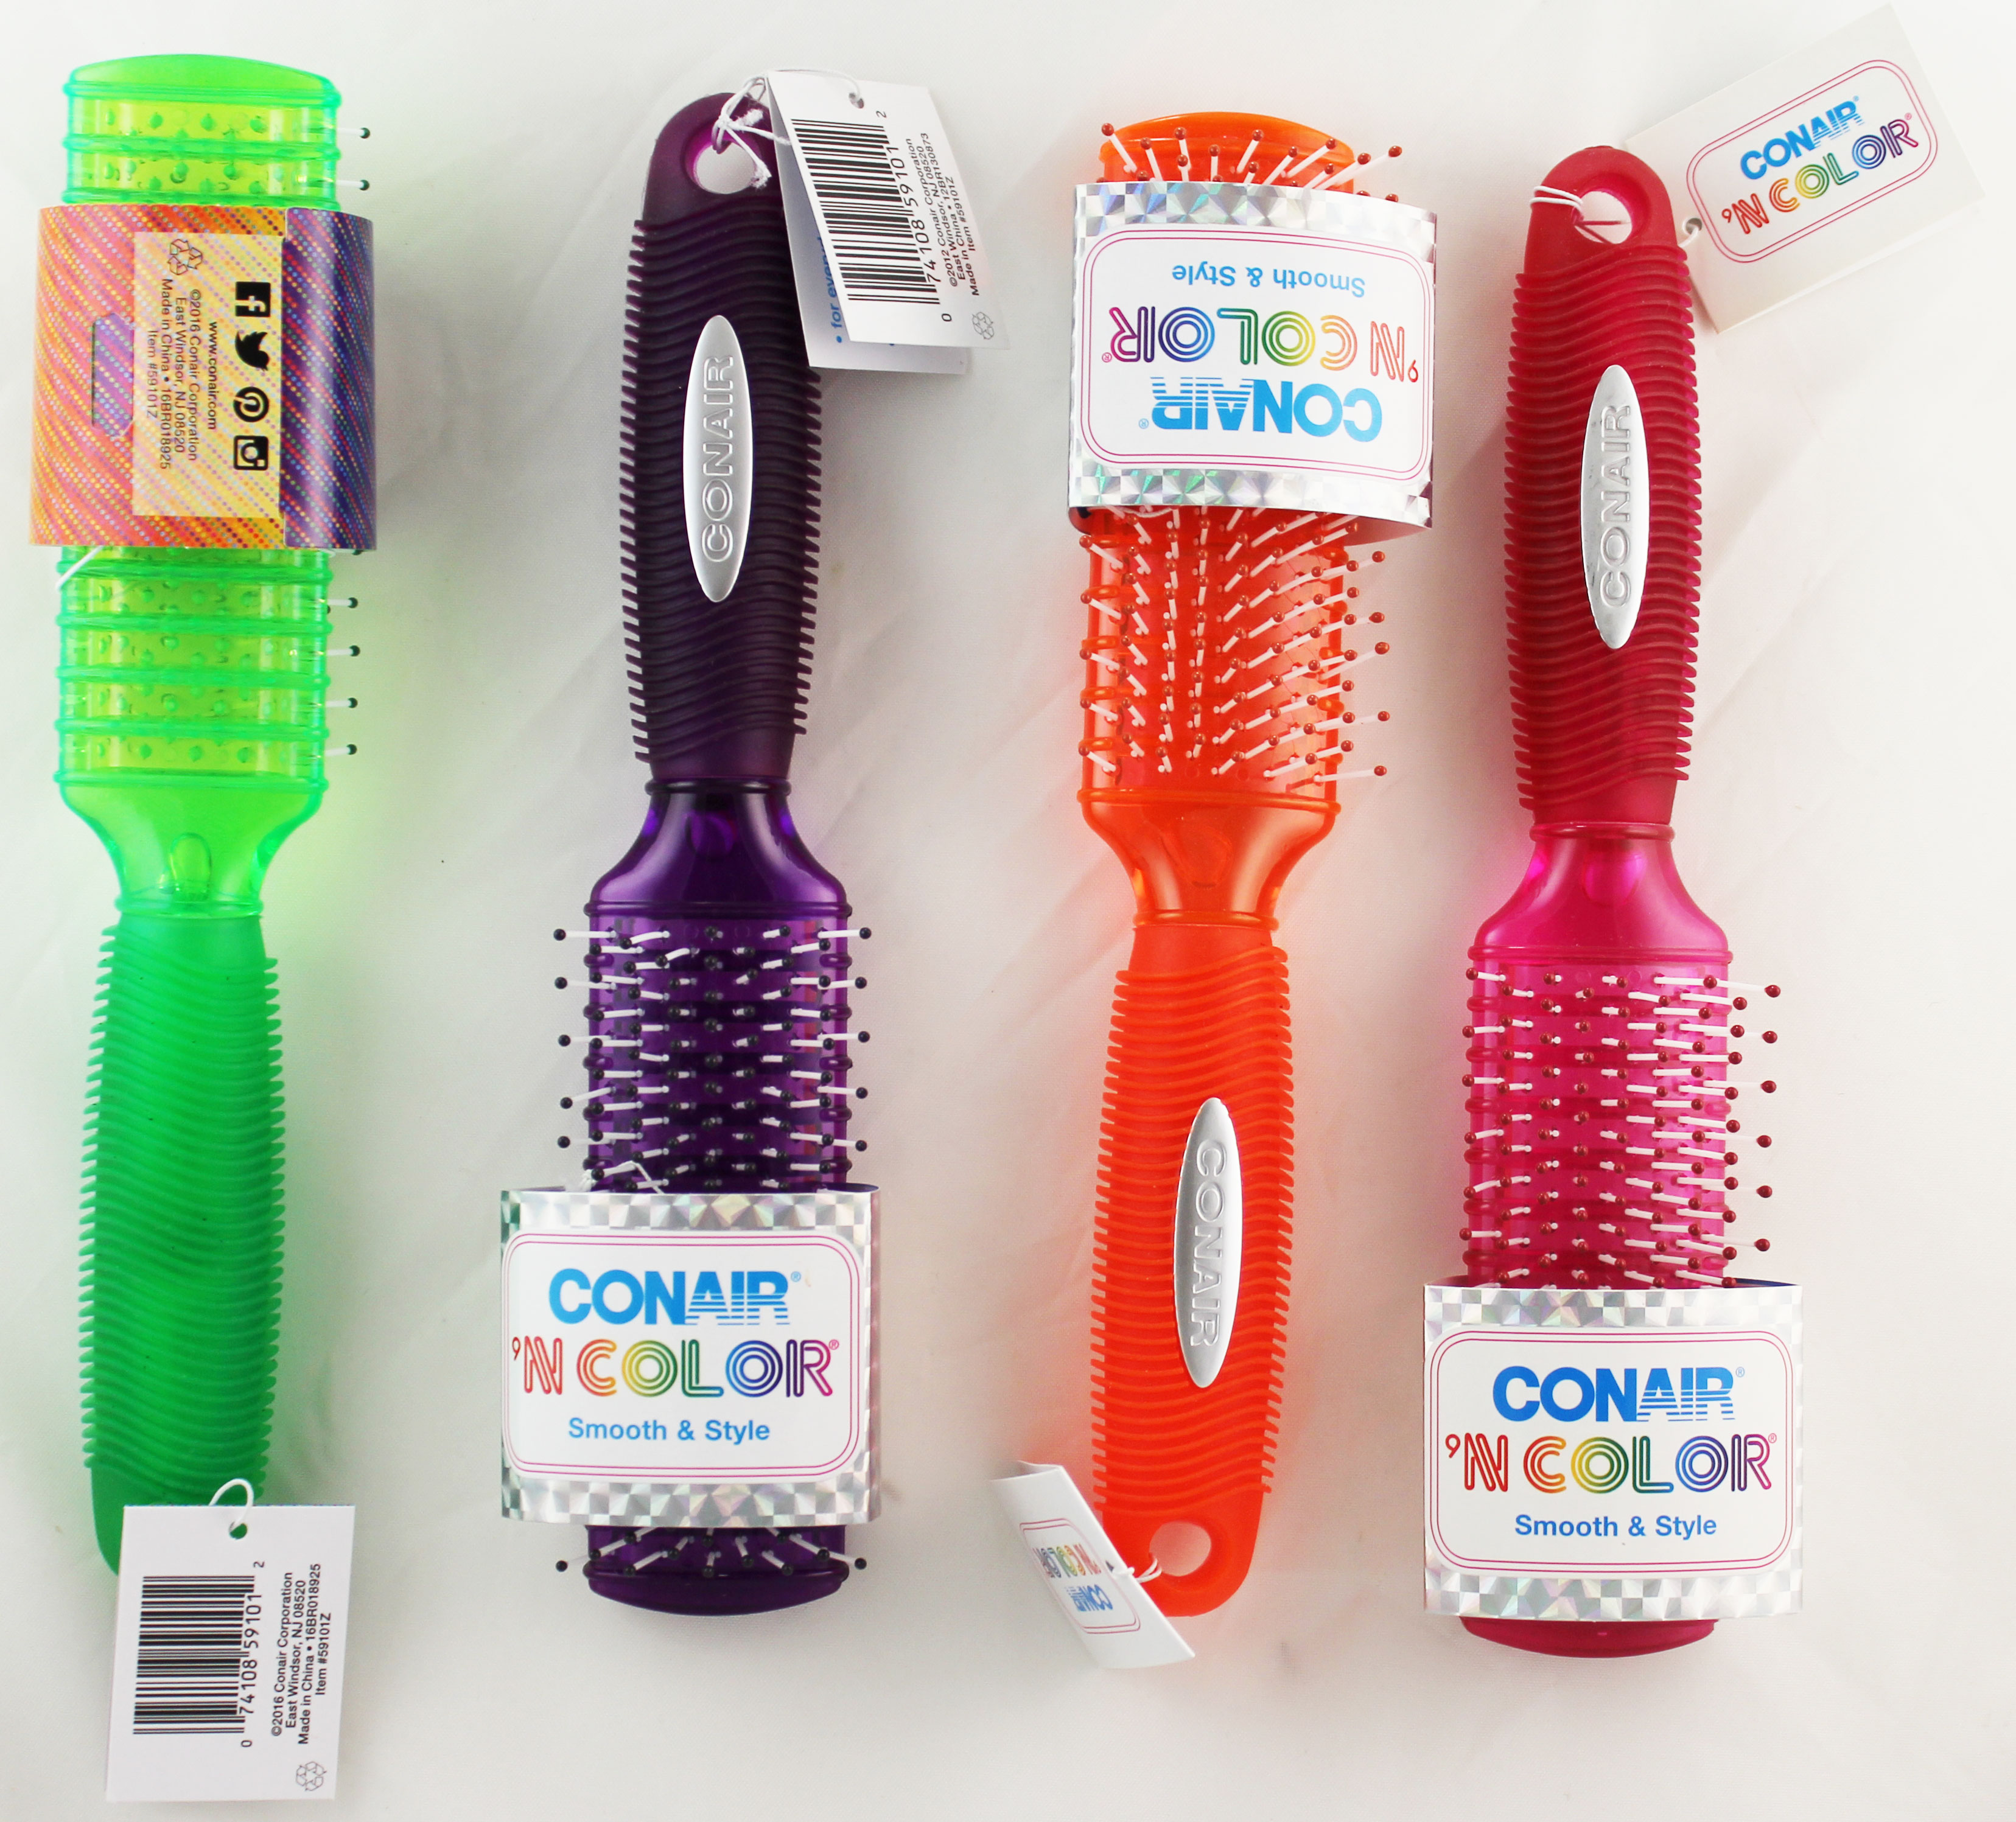 Conair 'N Color Smooth & Style Gel Grip Handle Comfort Hair Brush - 1 Count